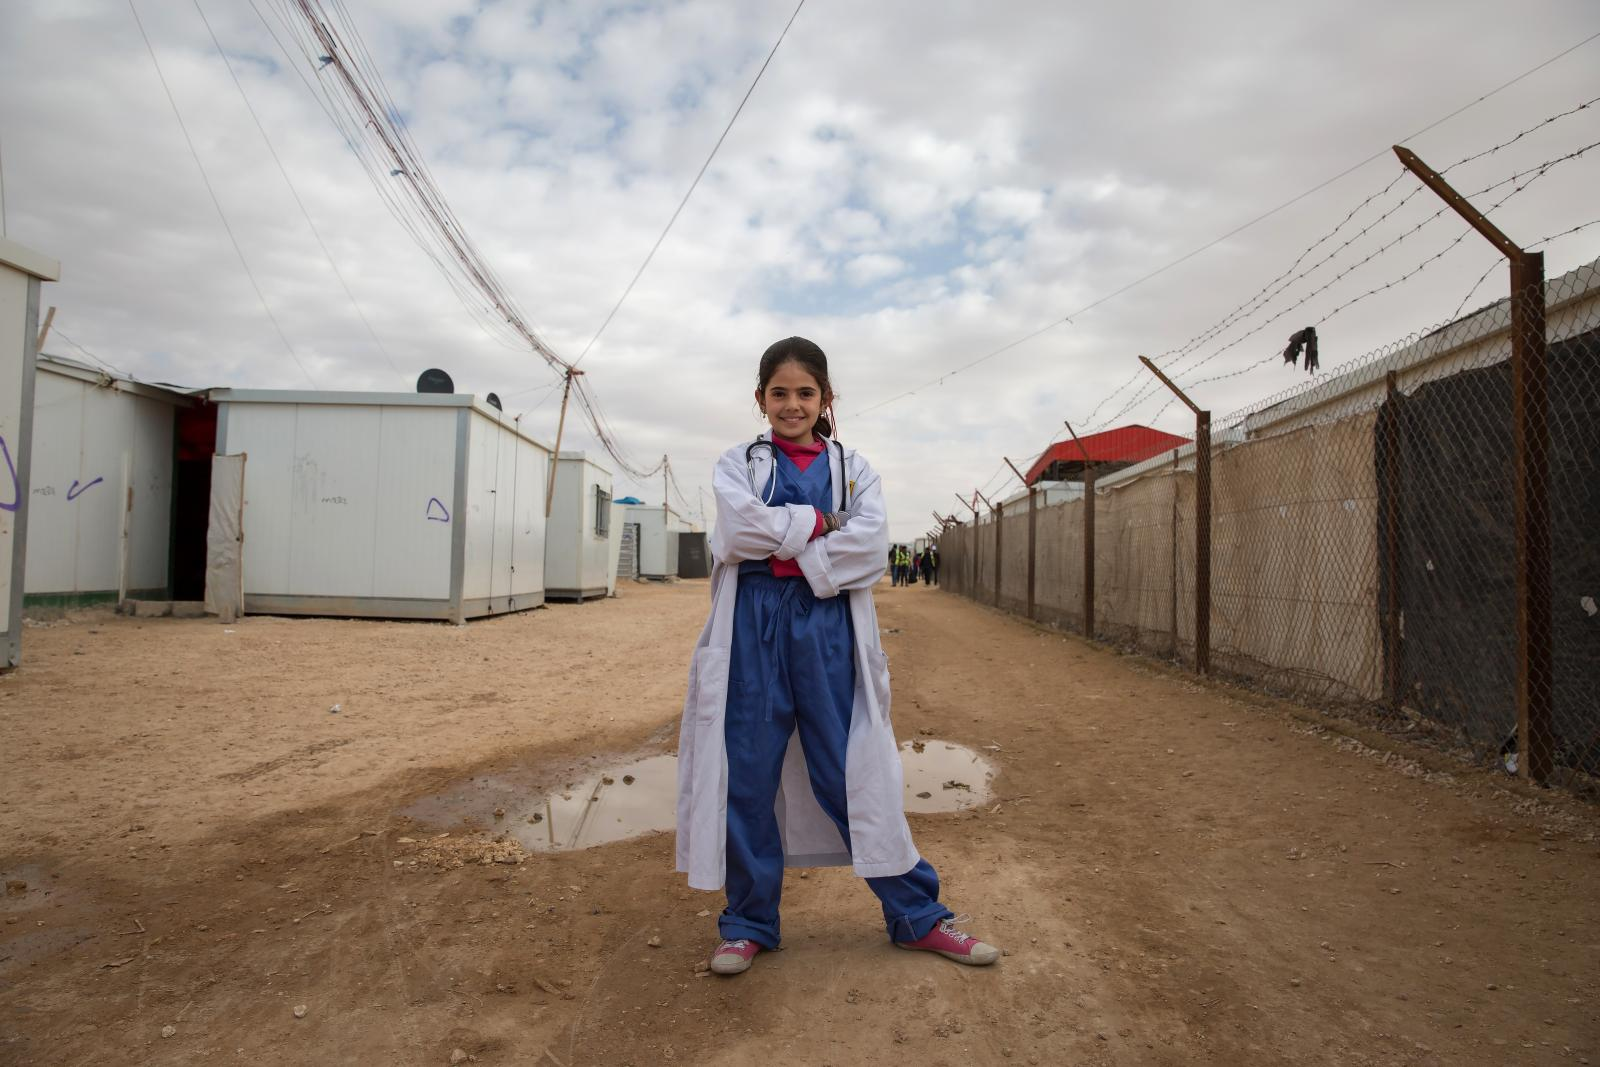 Rama, 13, dreams of becoming a doctor.